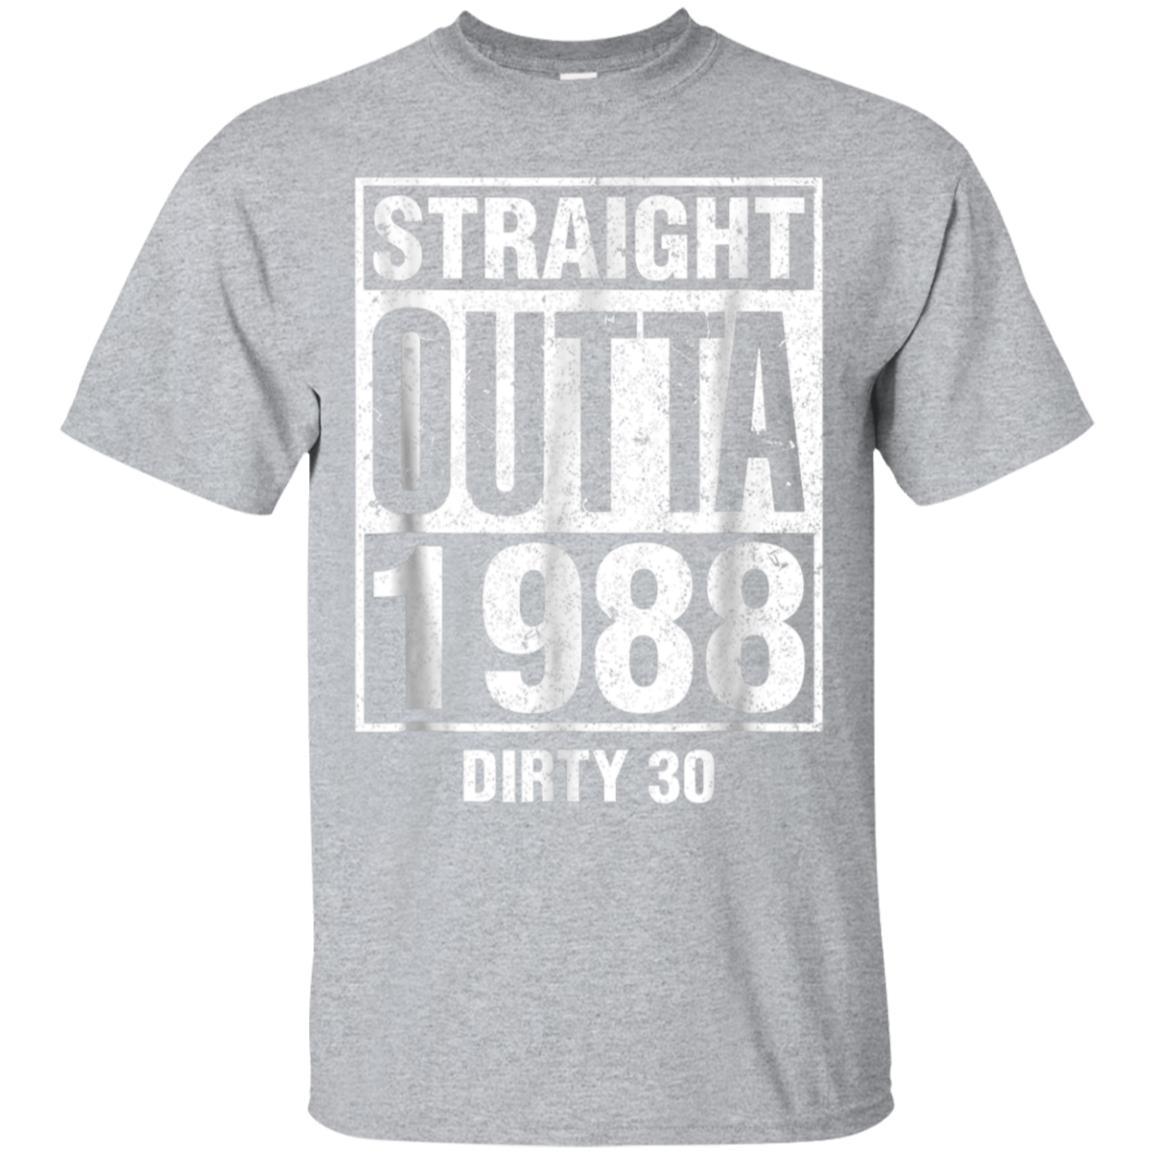 Straight Outta 1988 Dirty 30 Funny 30th Birthday Gift Shirt 99promocode